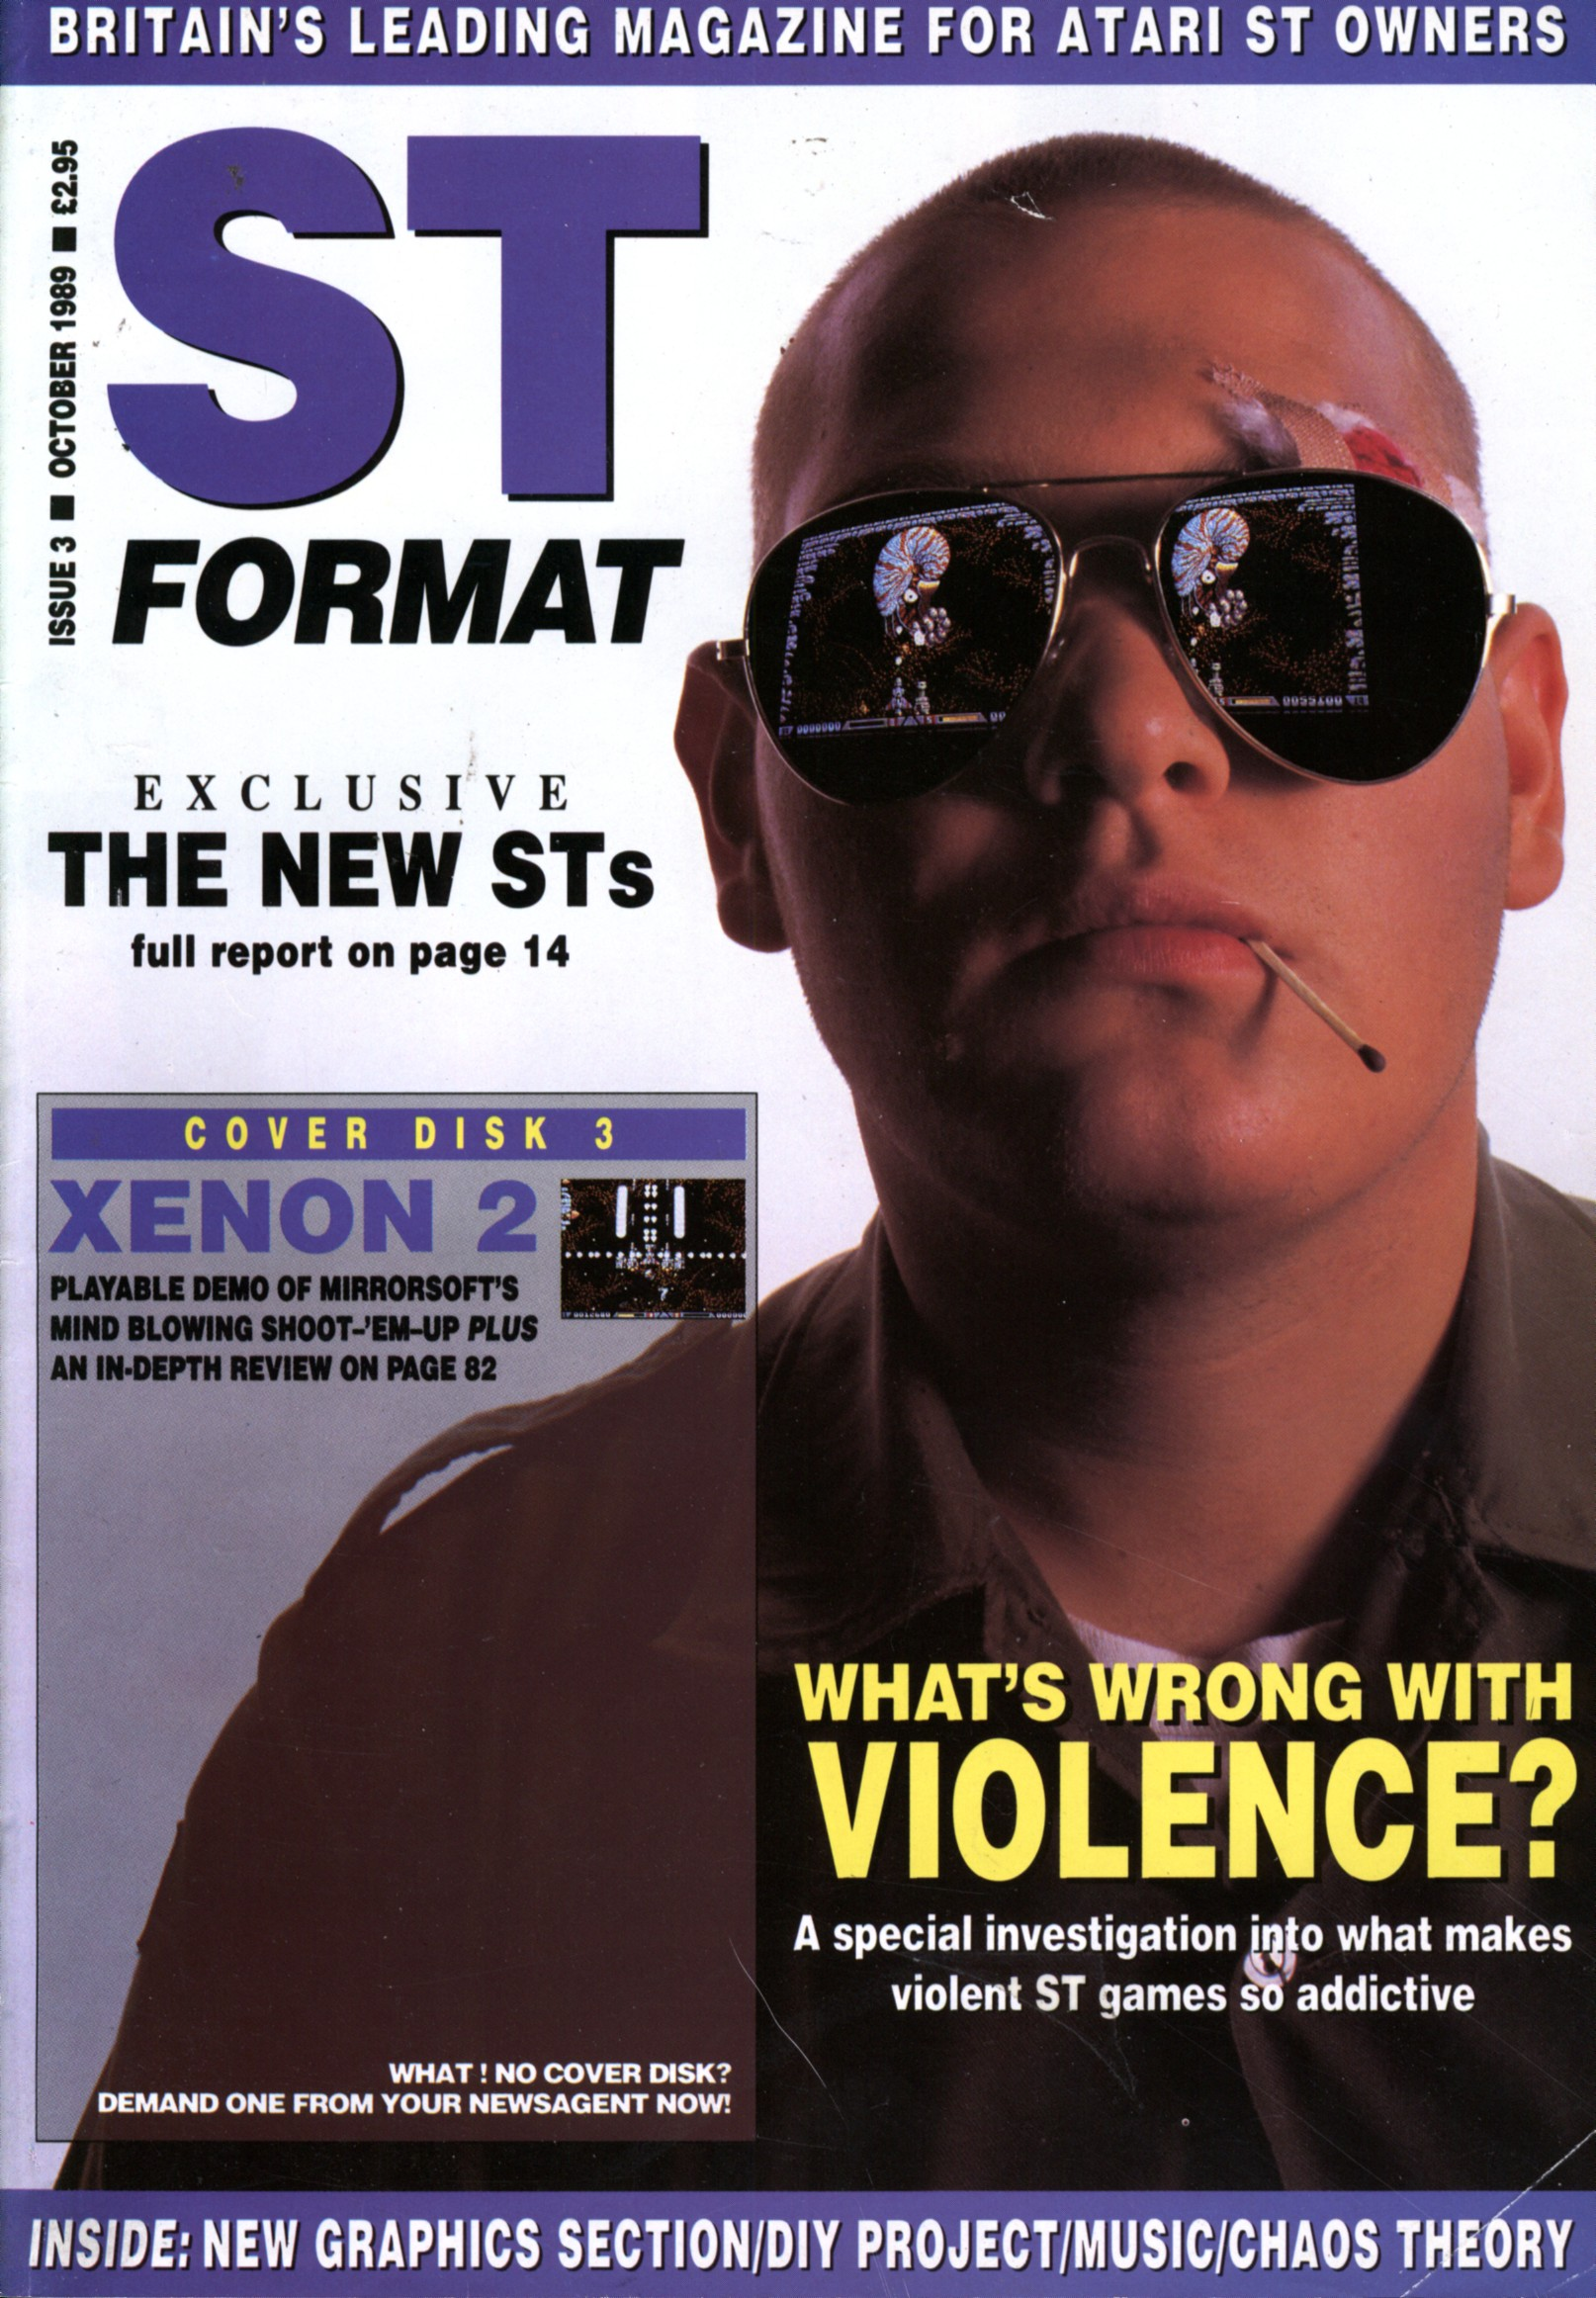 ST Format Issue 3 | Magazines from the Past Wiki | FANDOM